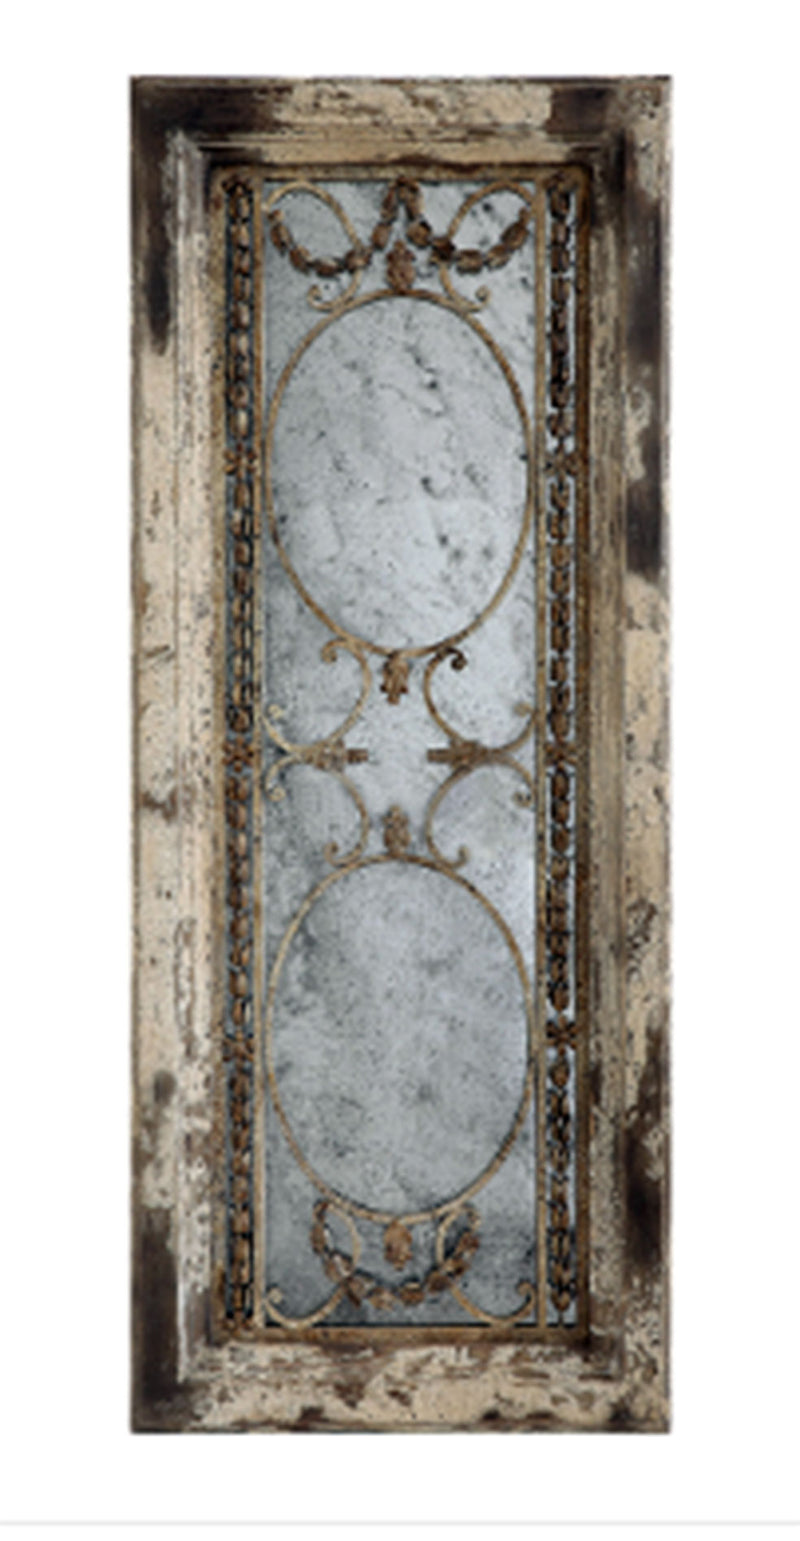 Wood Framed Antiqued Mirror w/ Metal Accents, Heavily Distressed Finish